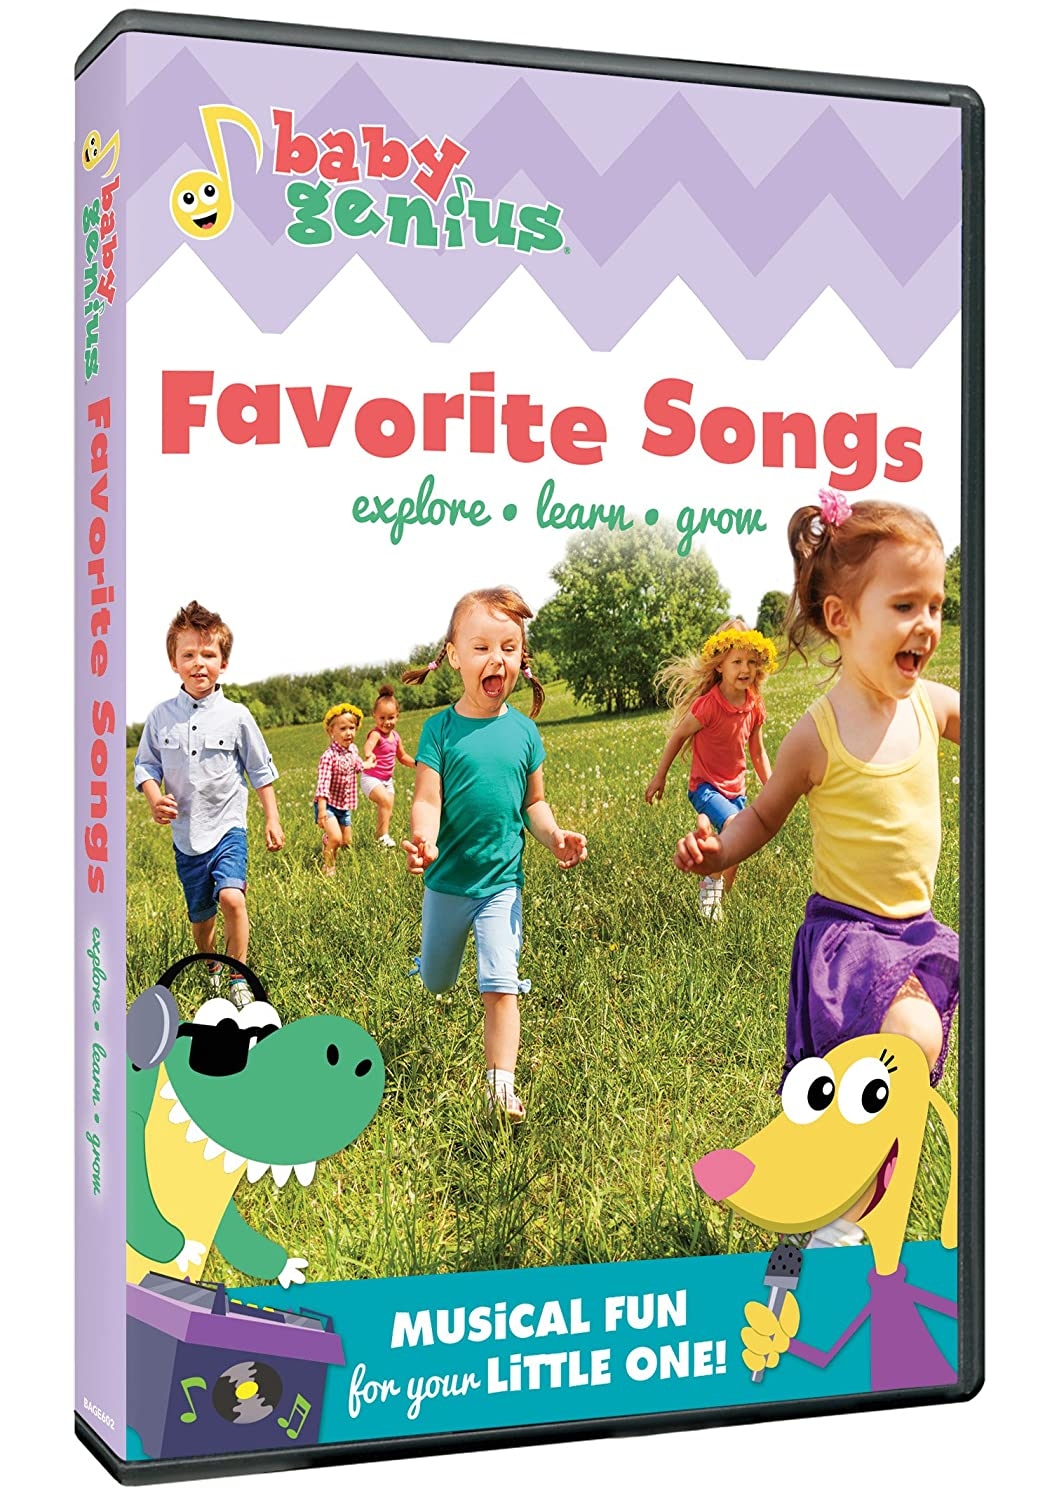 Baby Genius: Favorite Children's Songs re-release